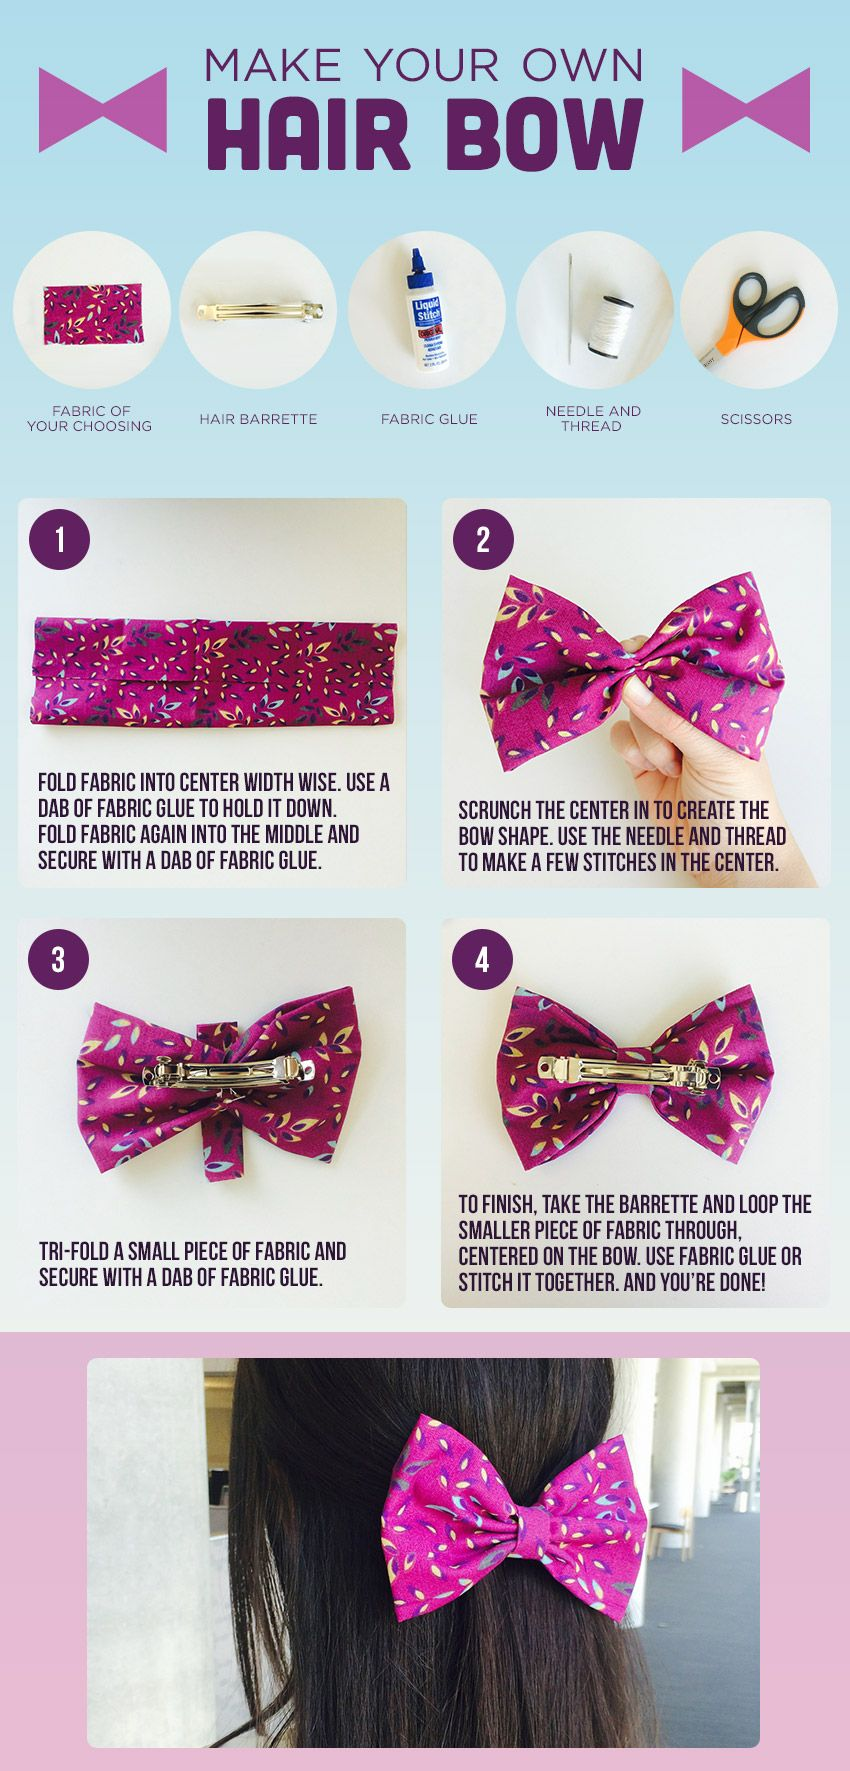 DIY: Make Your Own Hair Bow #fabricbowtutorial